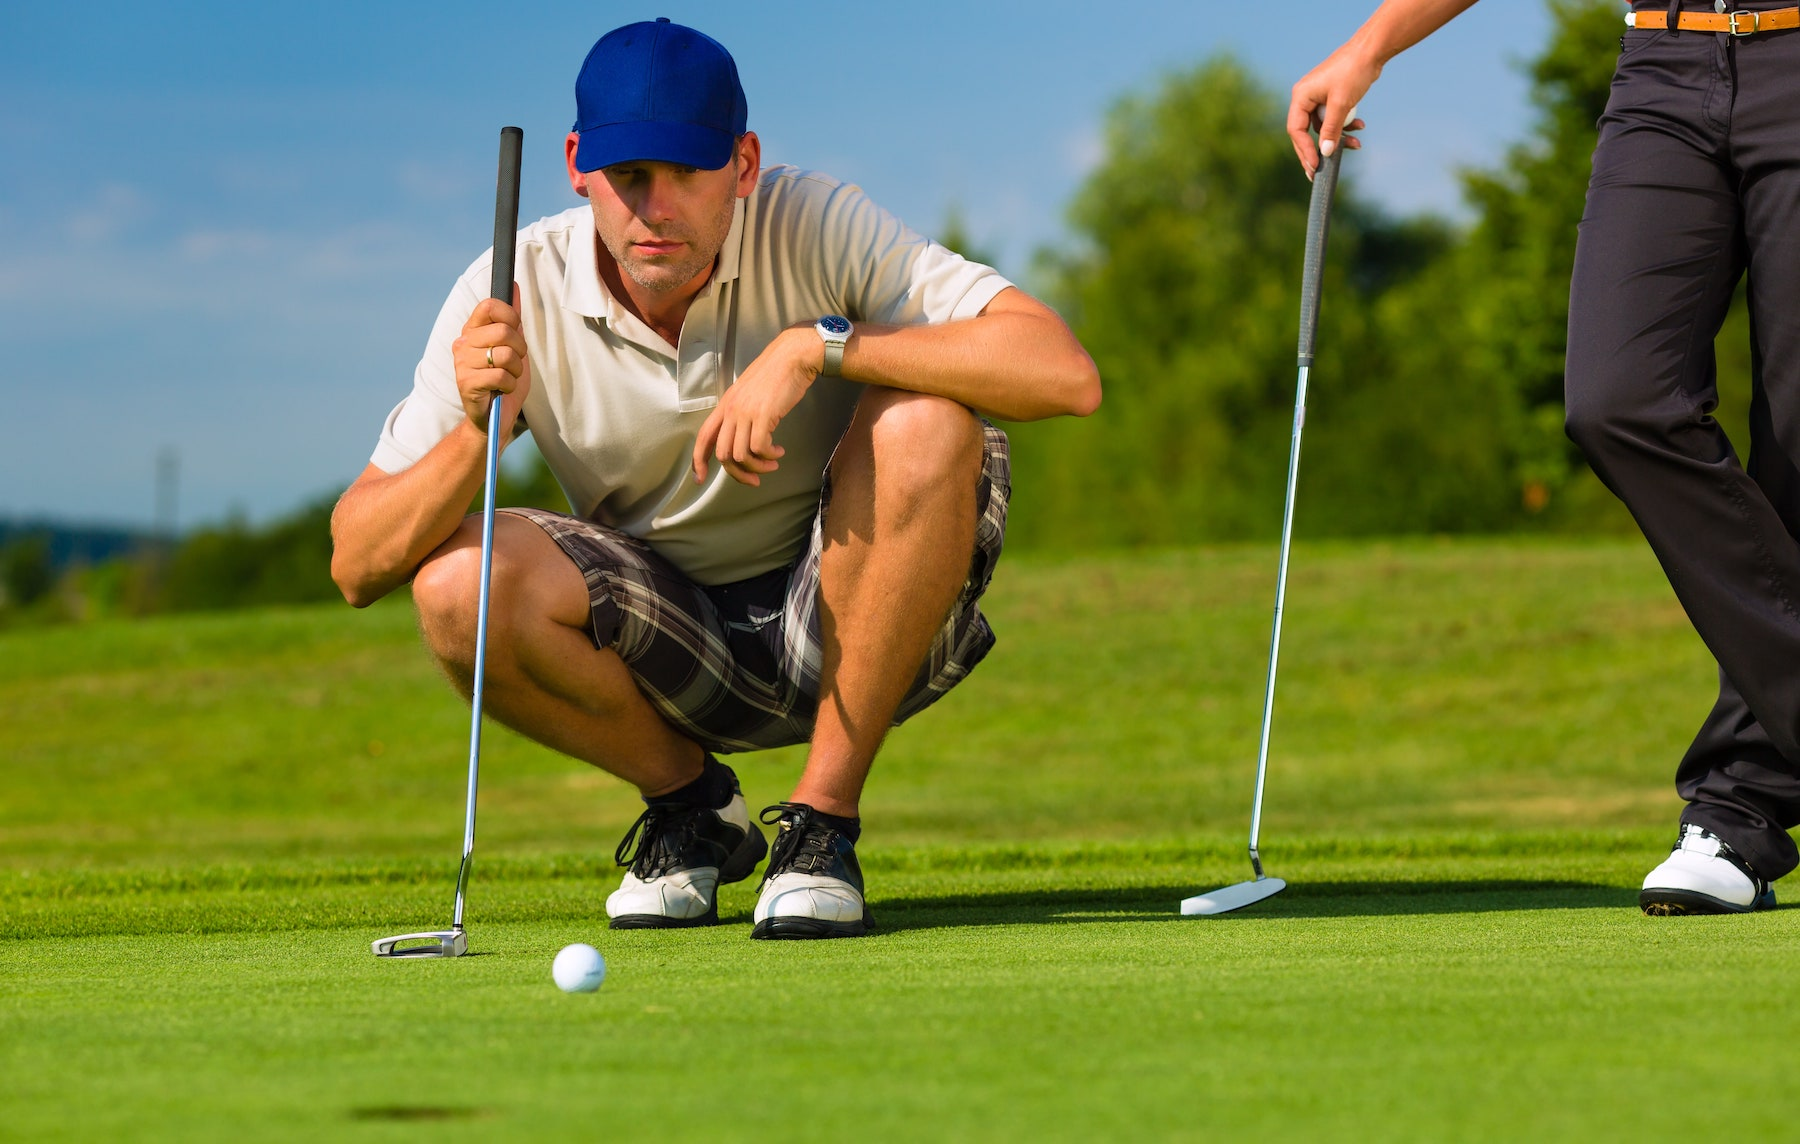 Competing in Golf Tournaments: How to Determine If You're Ready for Tournament Play